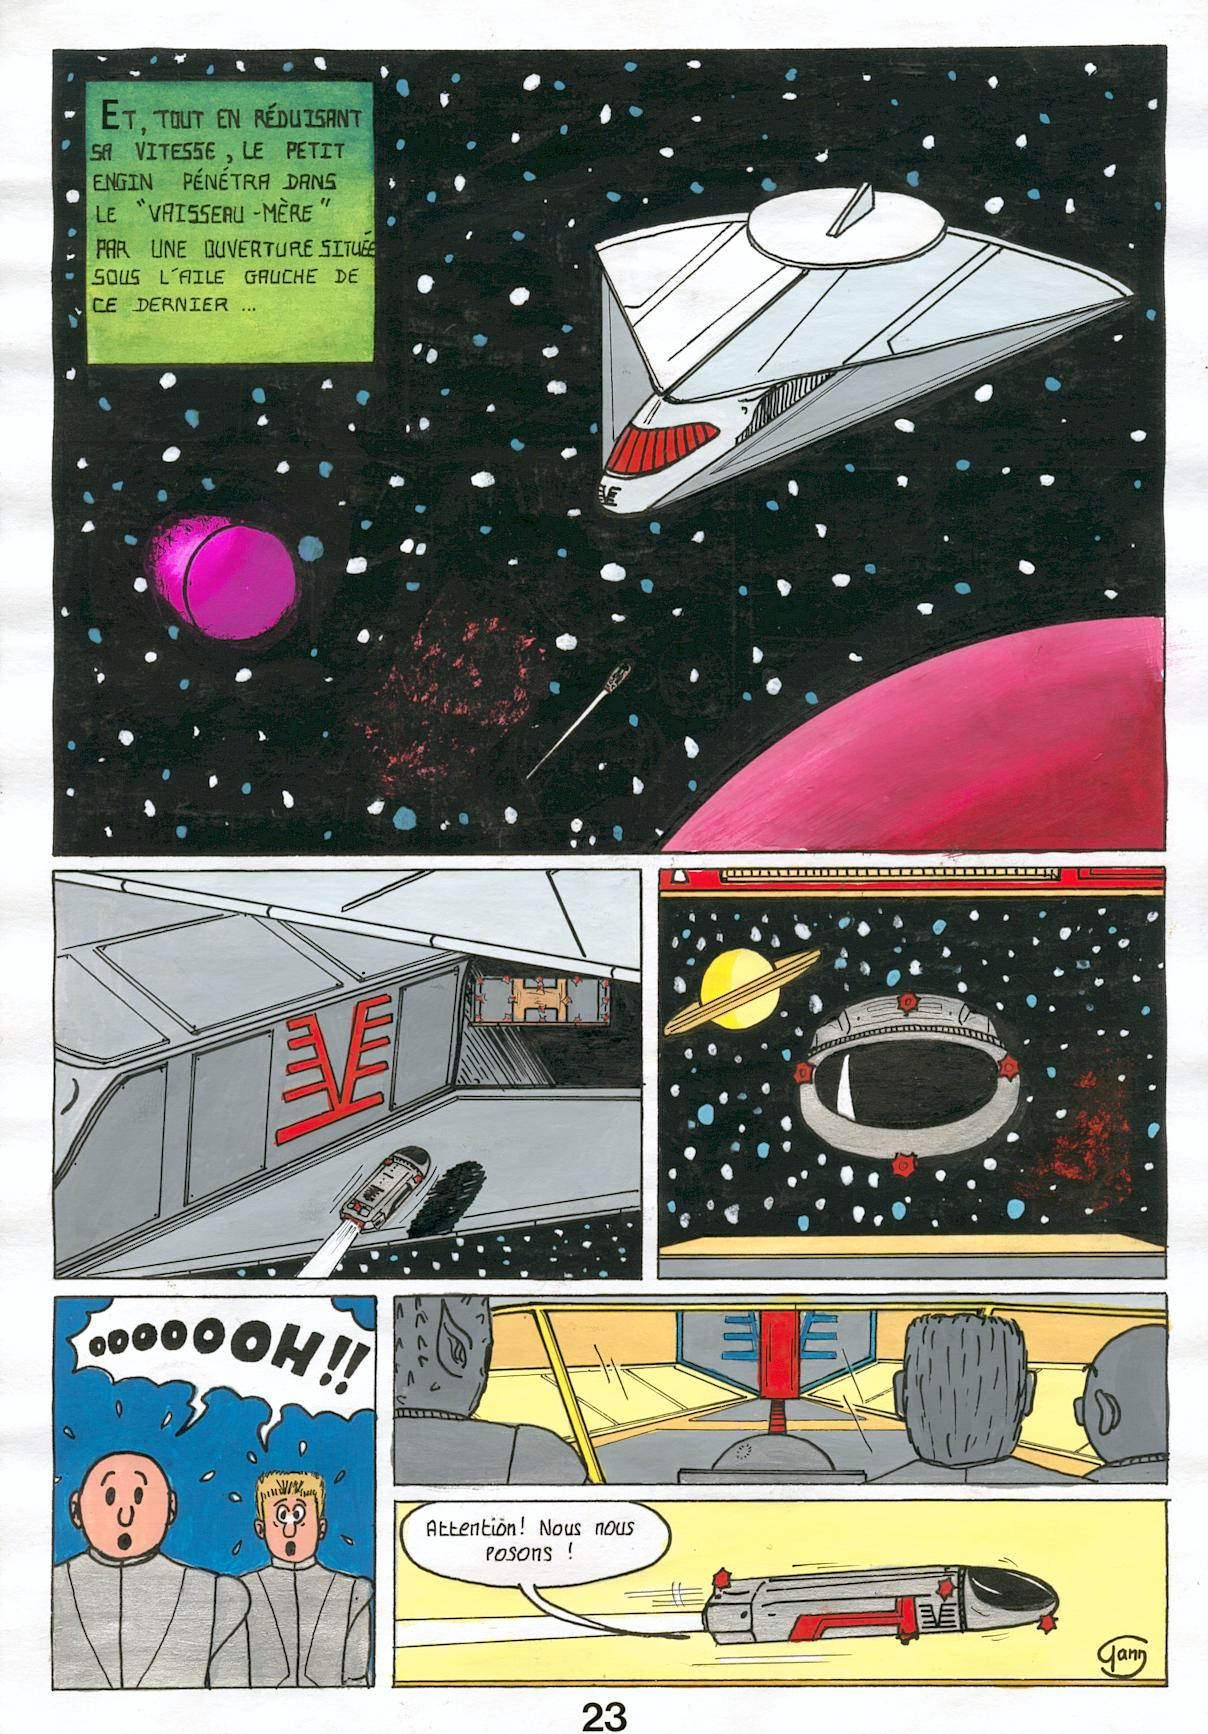 BD 8 page 23